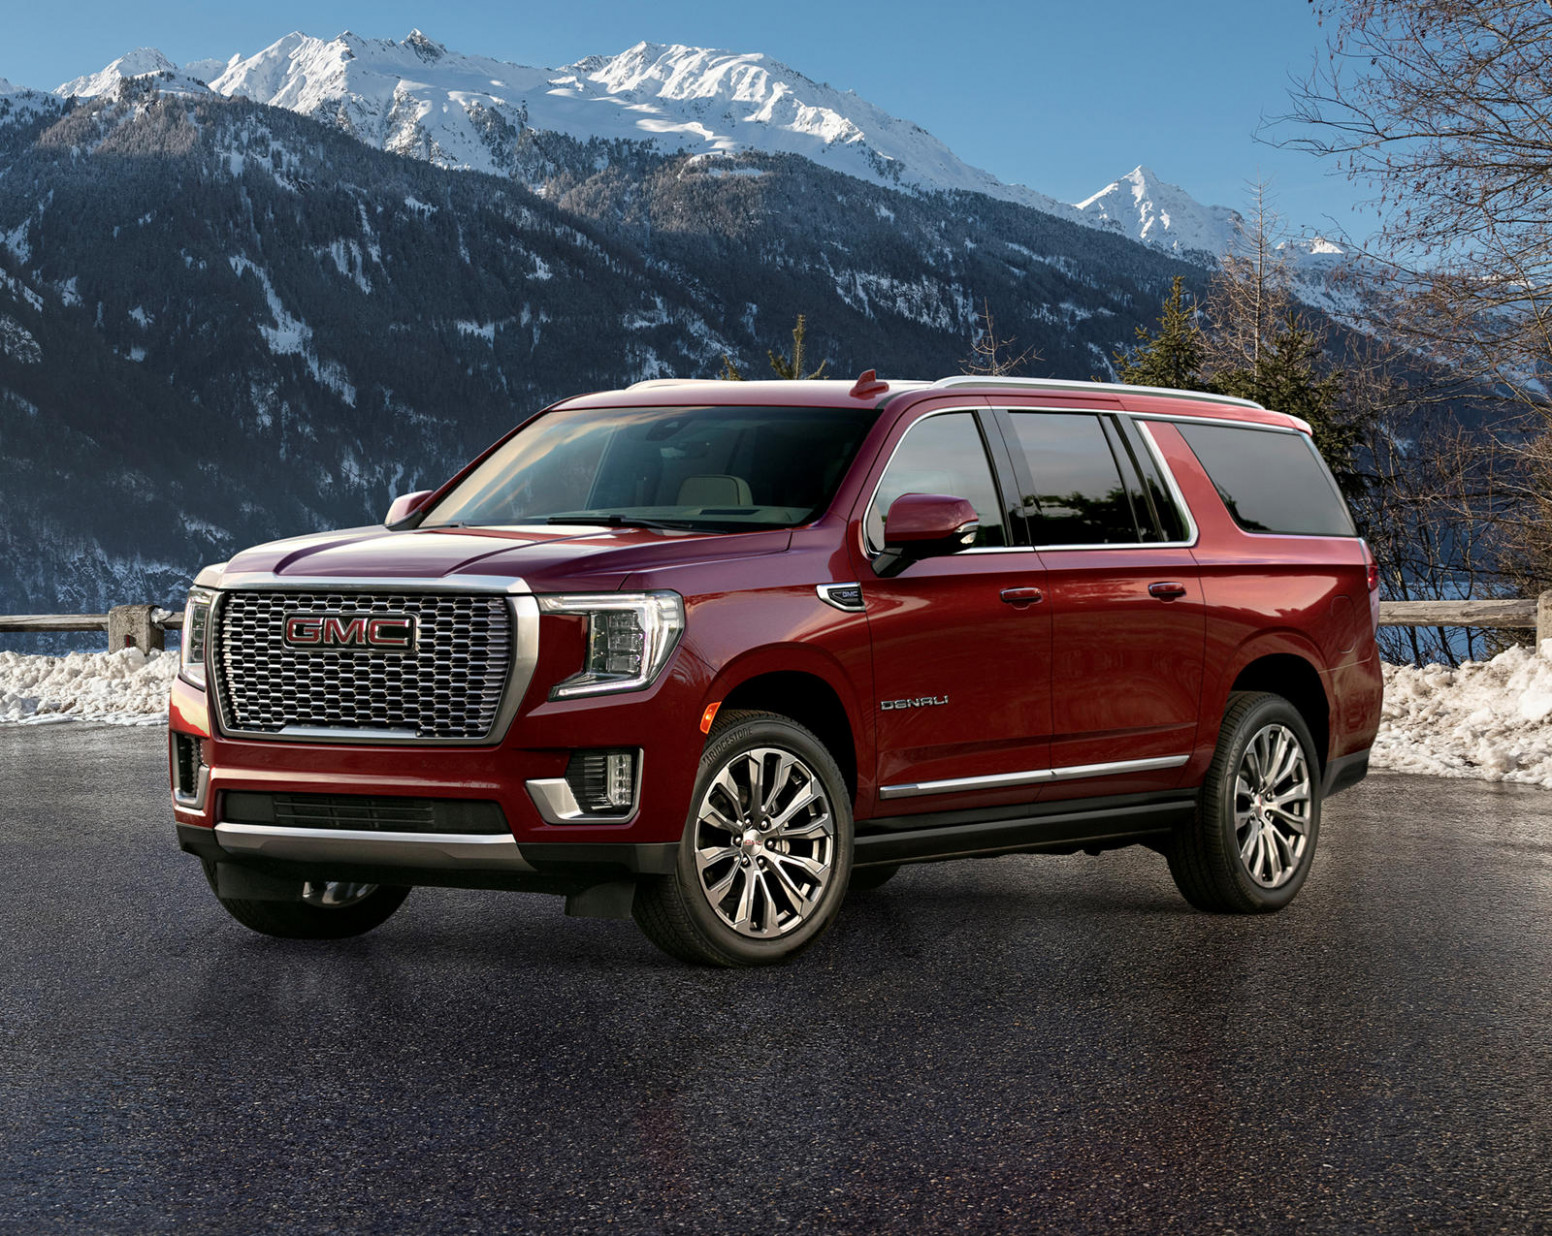 Exterior and Interior Gmc Denali Suv 2022